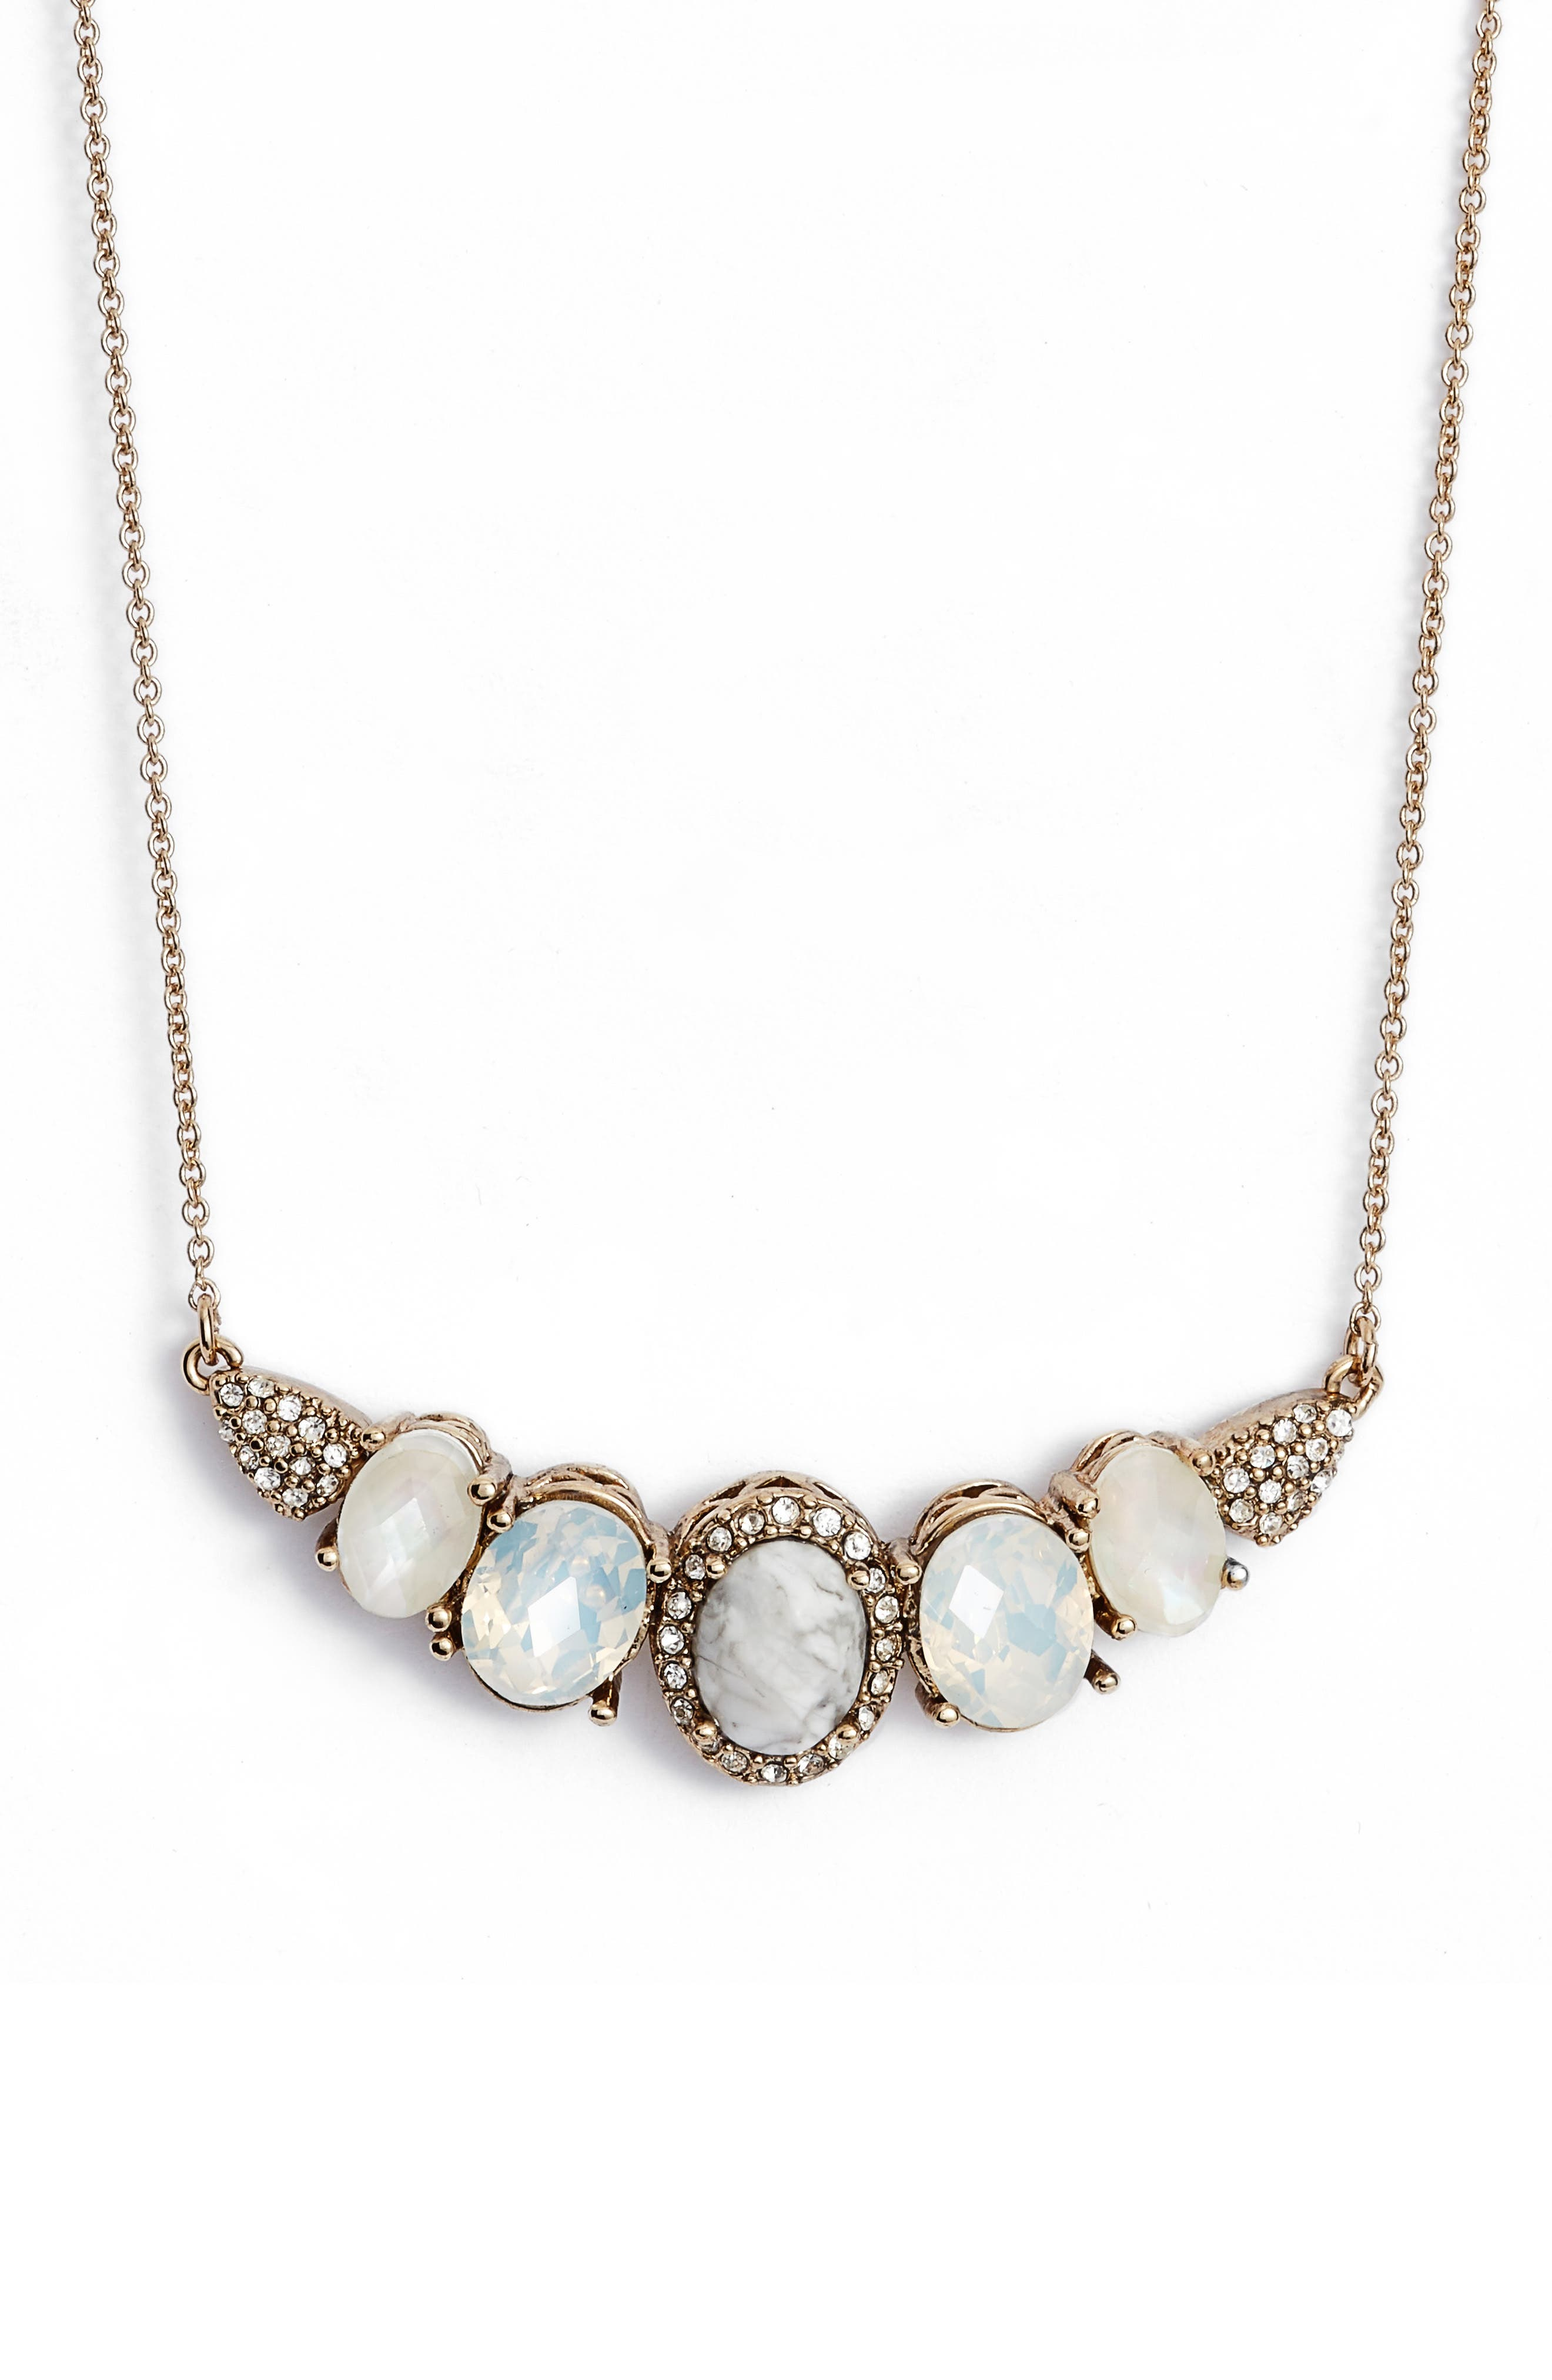 Wanderlust Frontal Necklace,                         Main,                         color, Gold/ White Multi